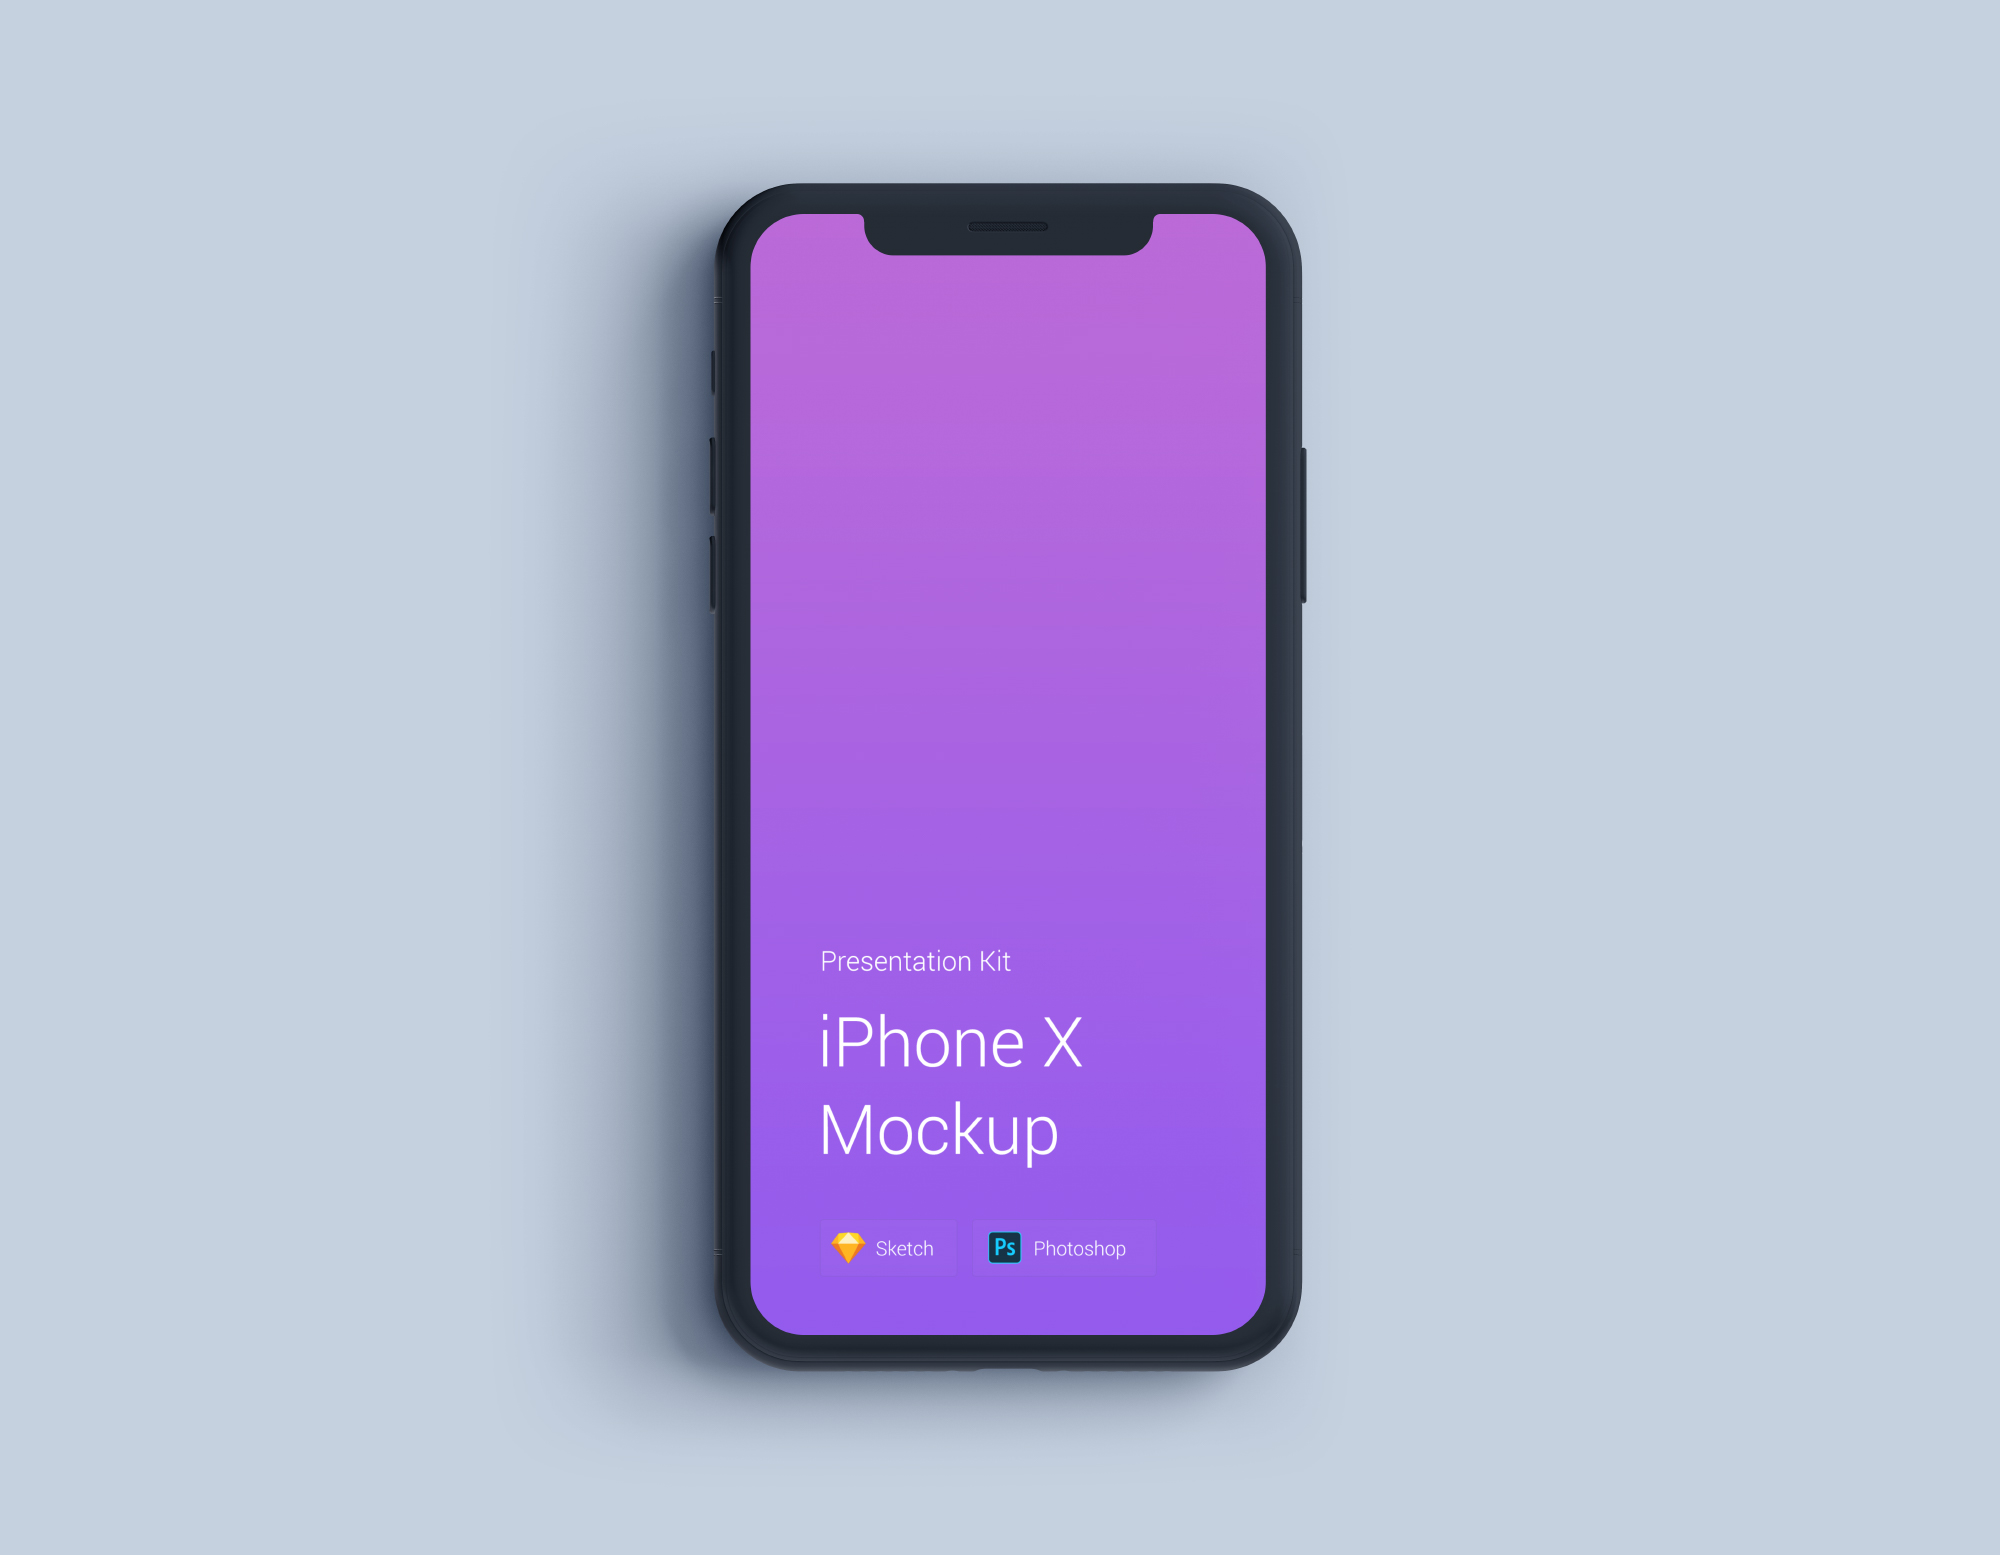 Download iPhone X Mockup for Sketch and Photoshop